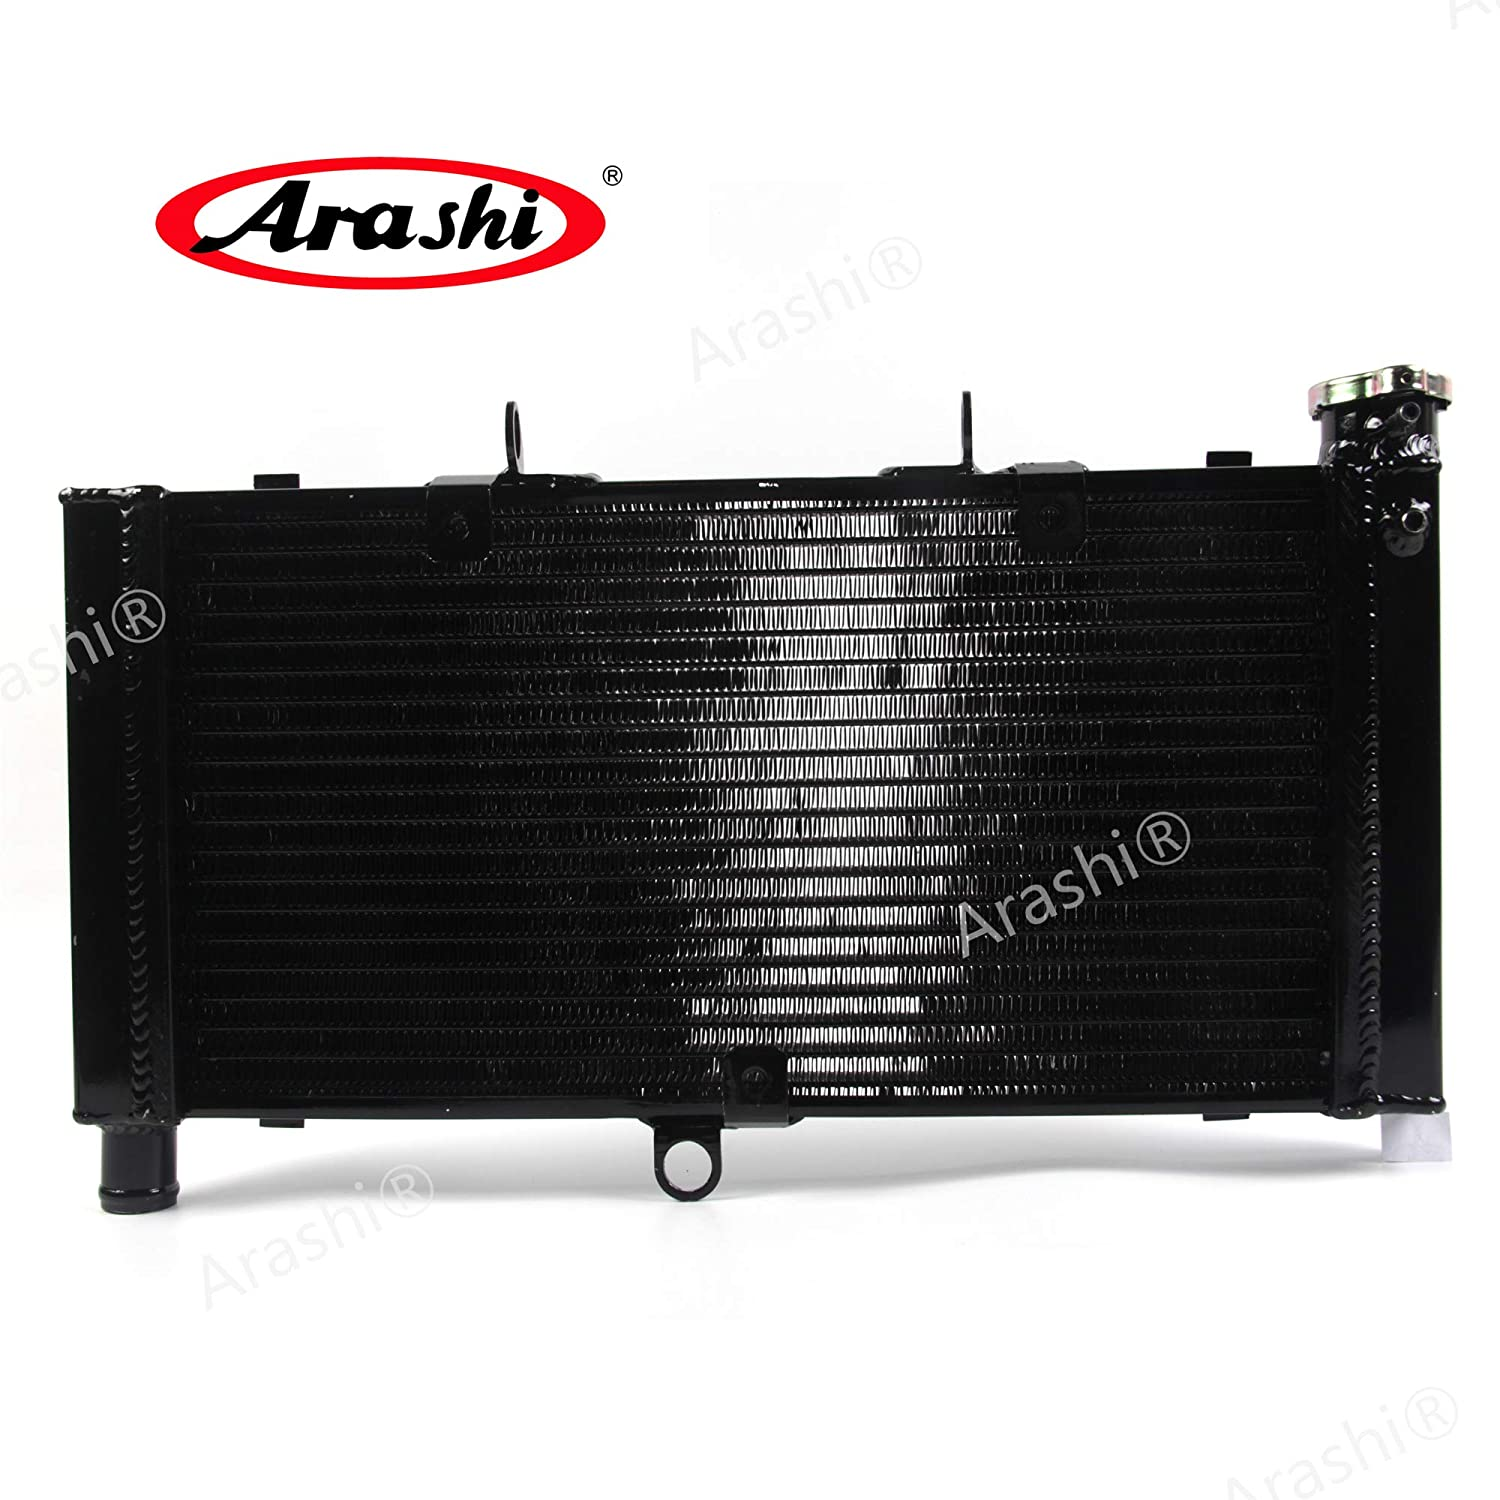 Arashi Radiator Cooling Cooler for HONDA CBR900RR 1993 1994 1995 Motorcycle Replacement Accessories CBR900 CBR 900 RR 900RR Black 93 94 95